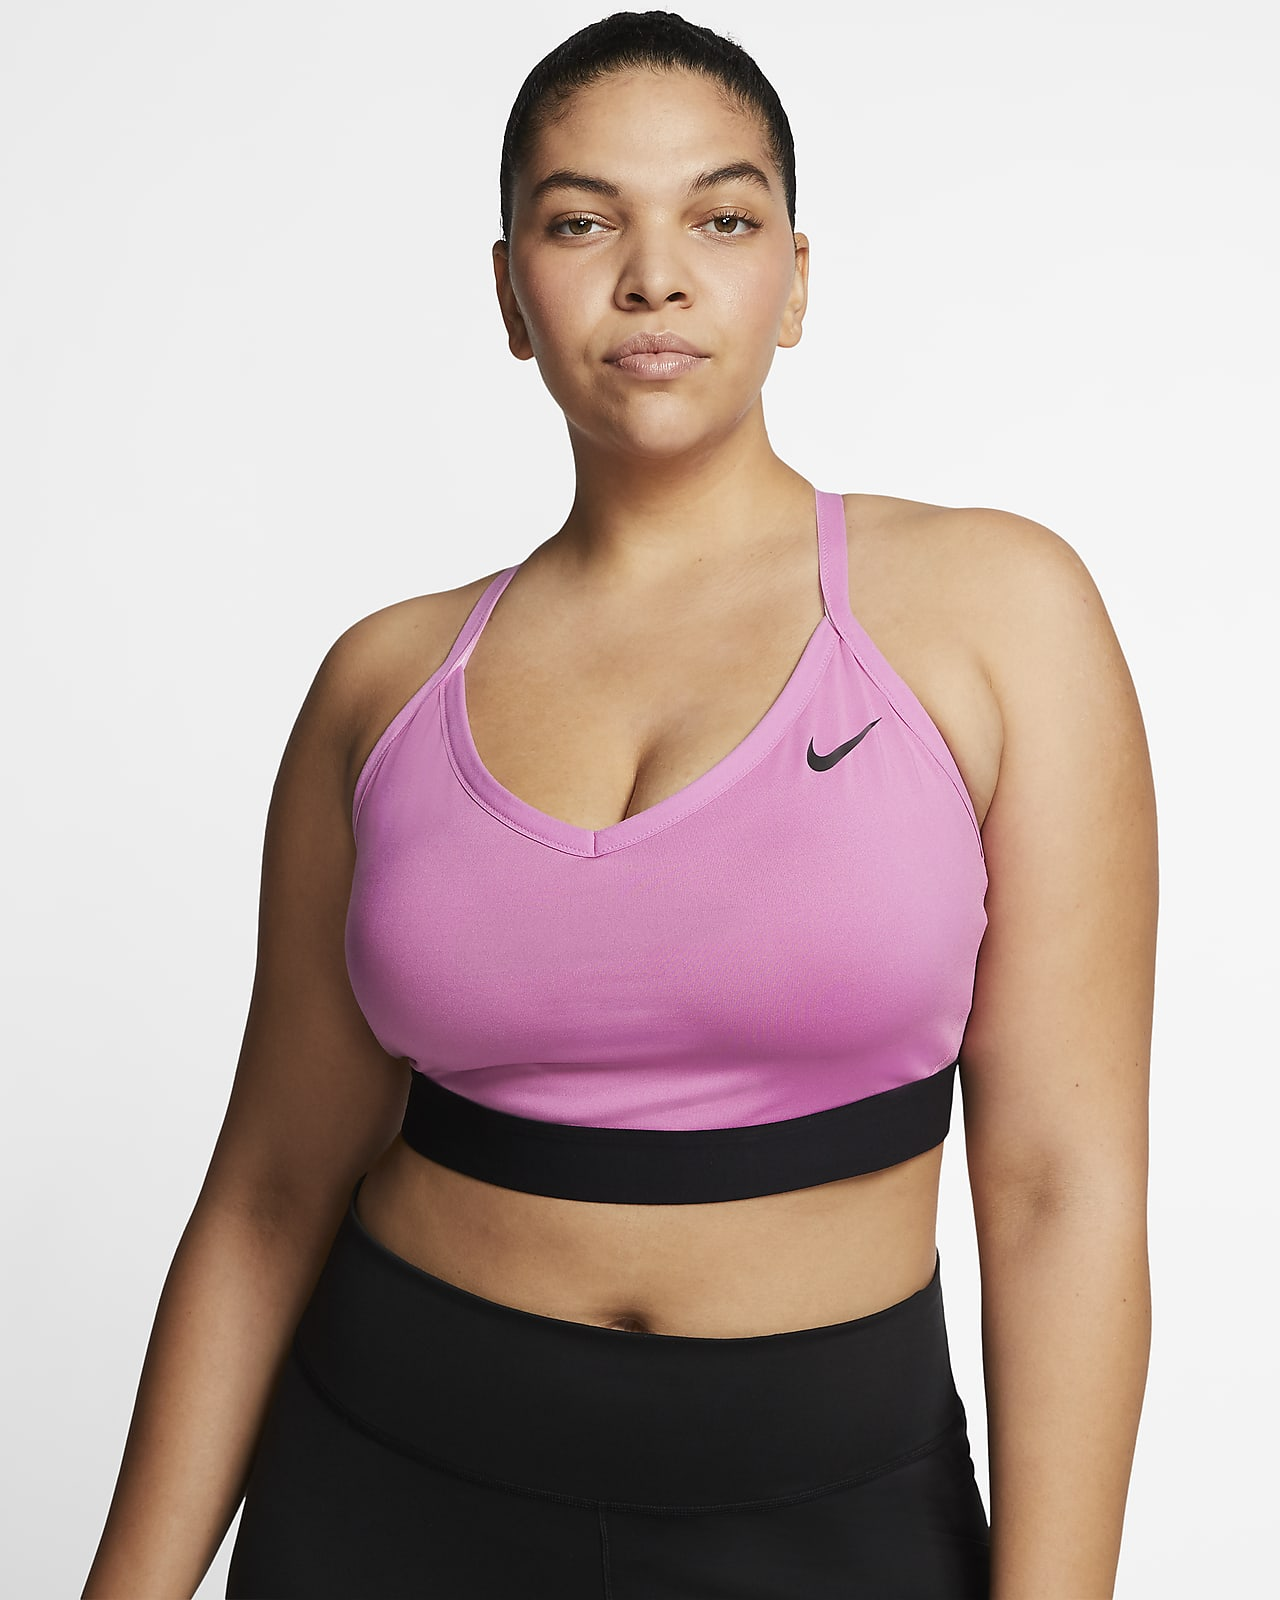 Nike Dri-FIT Indy Women's Light-Support